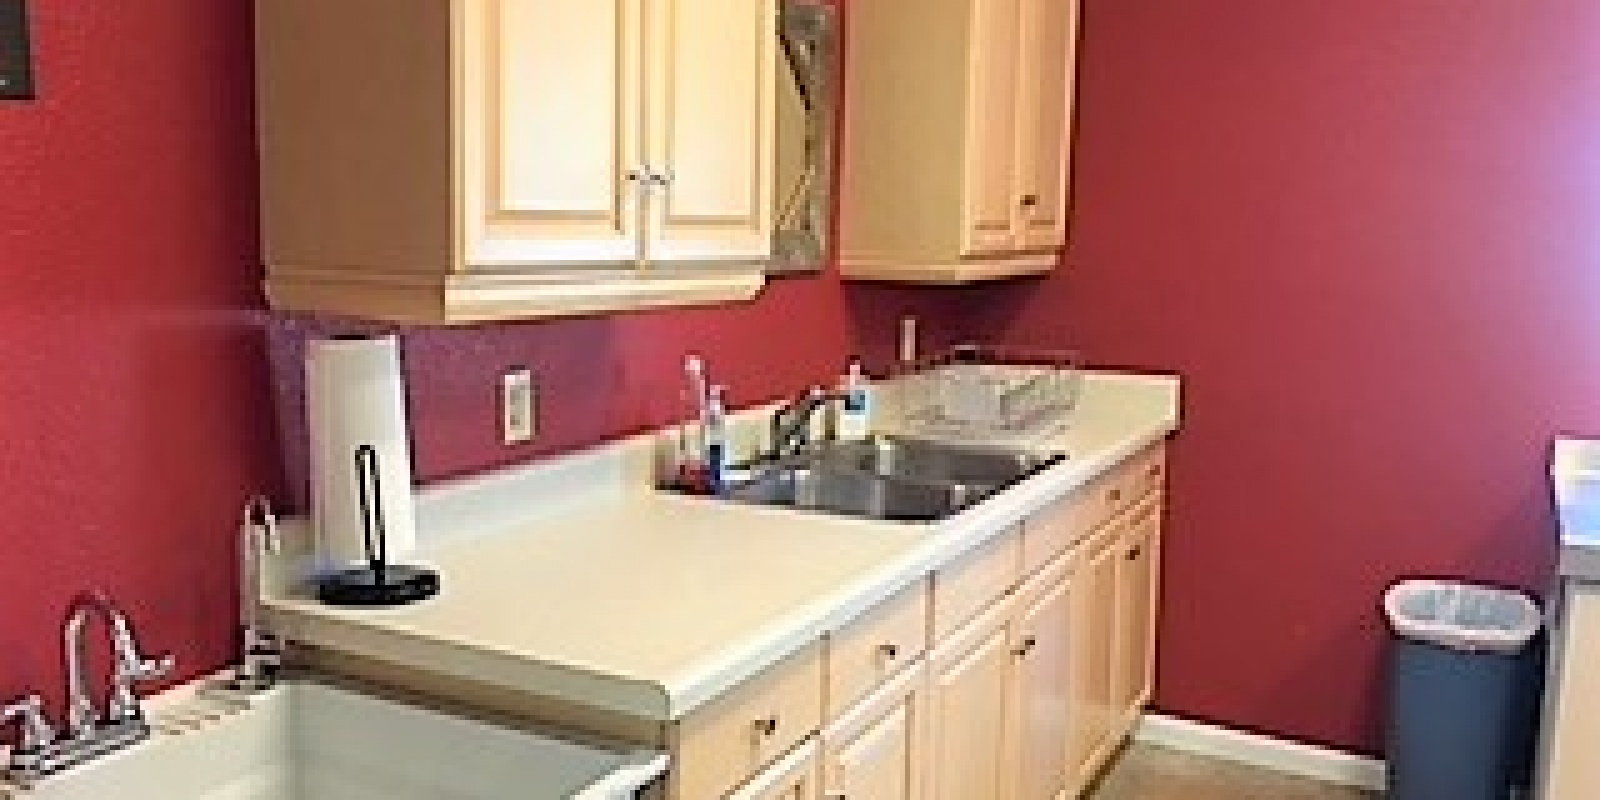 1 Friends Trail,Uvalde,78801,8 Rooms Rooms,2 BathroomsBathrooms,Commercial,Friends Trail,1064